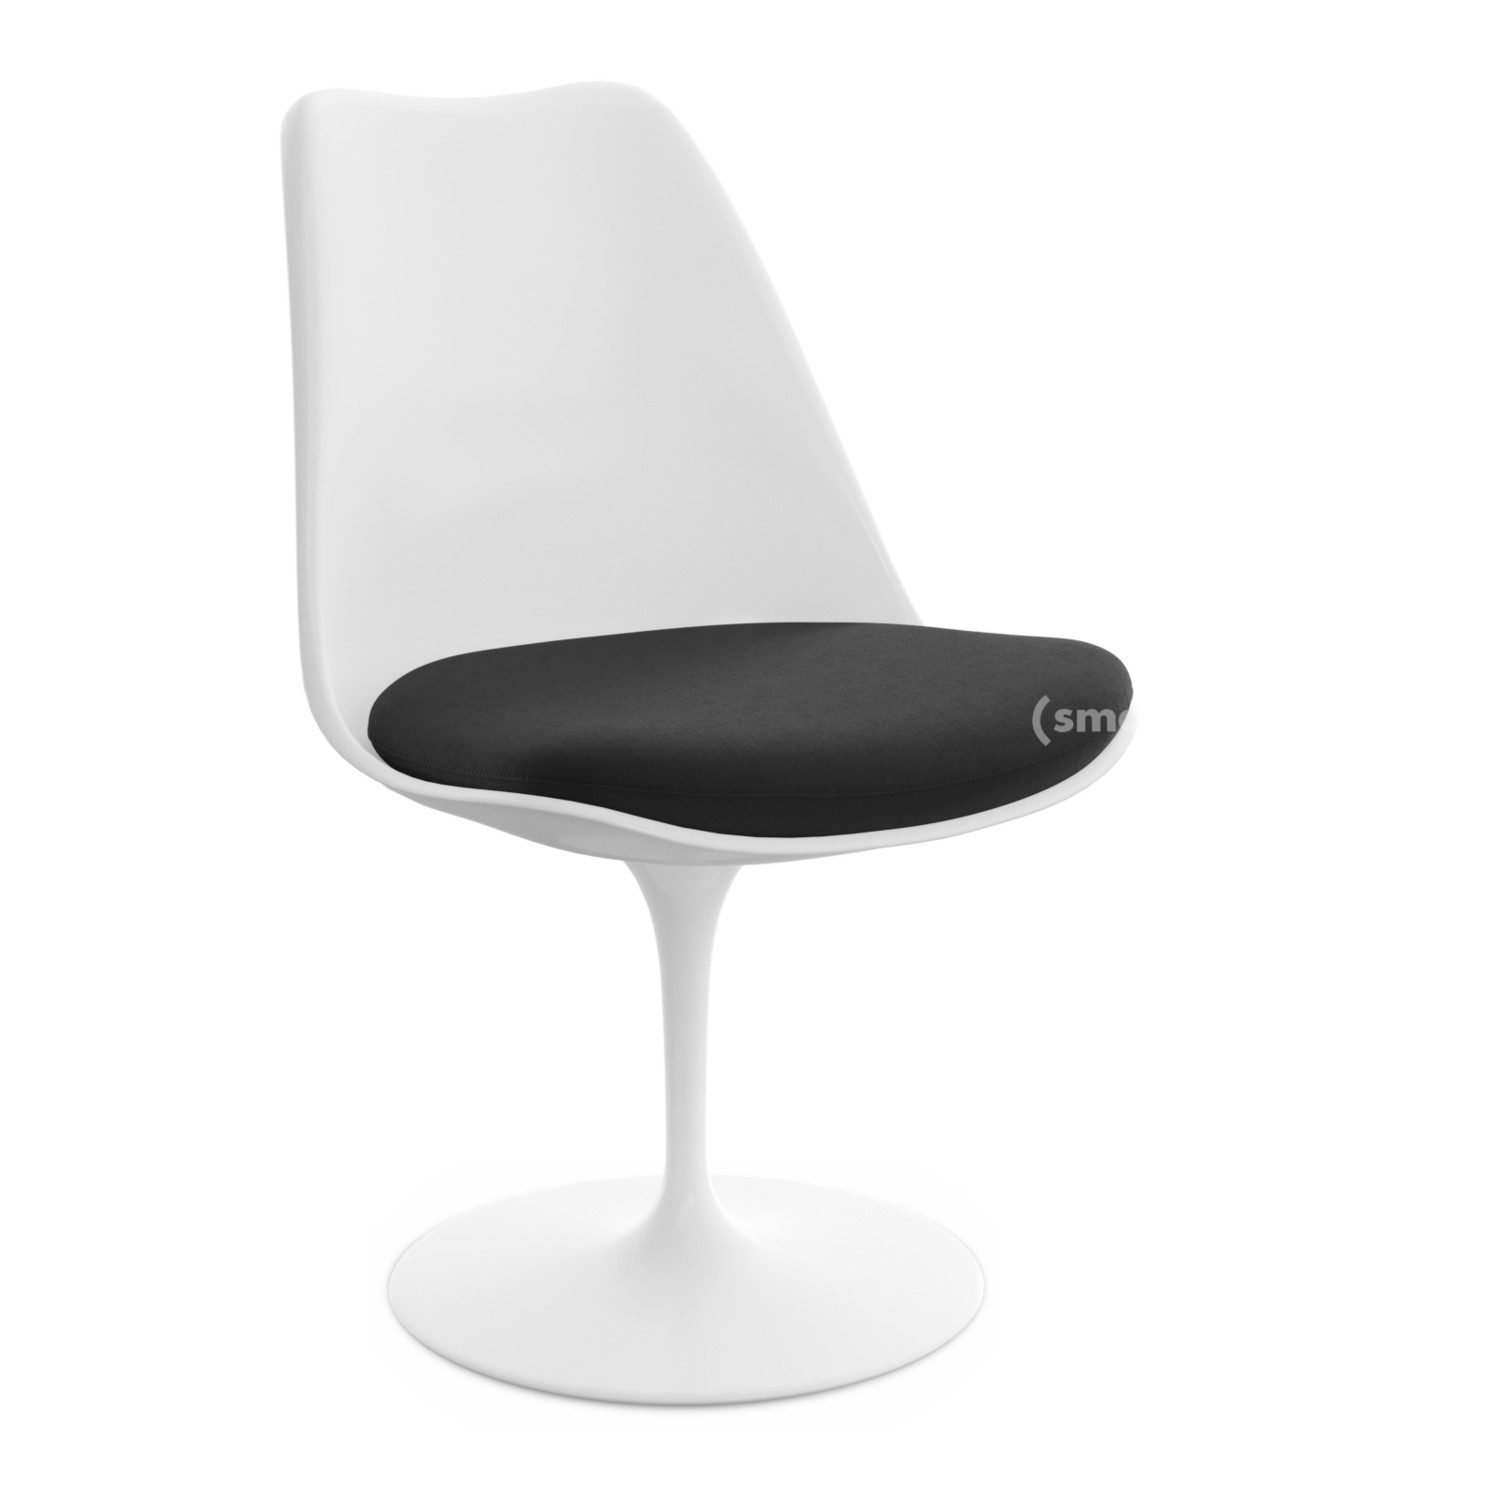 saarinen tulip chair. saarinen tulip chair